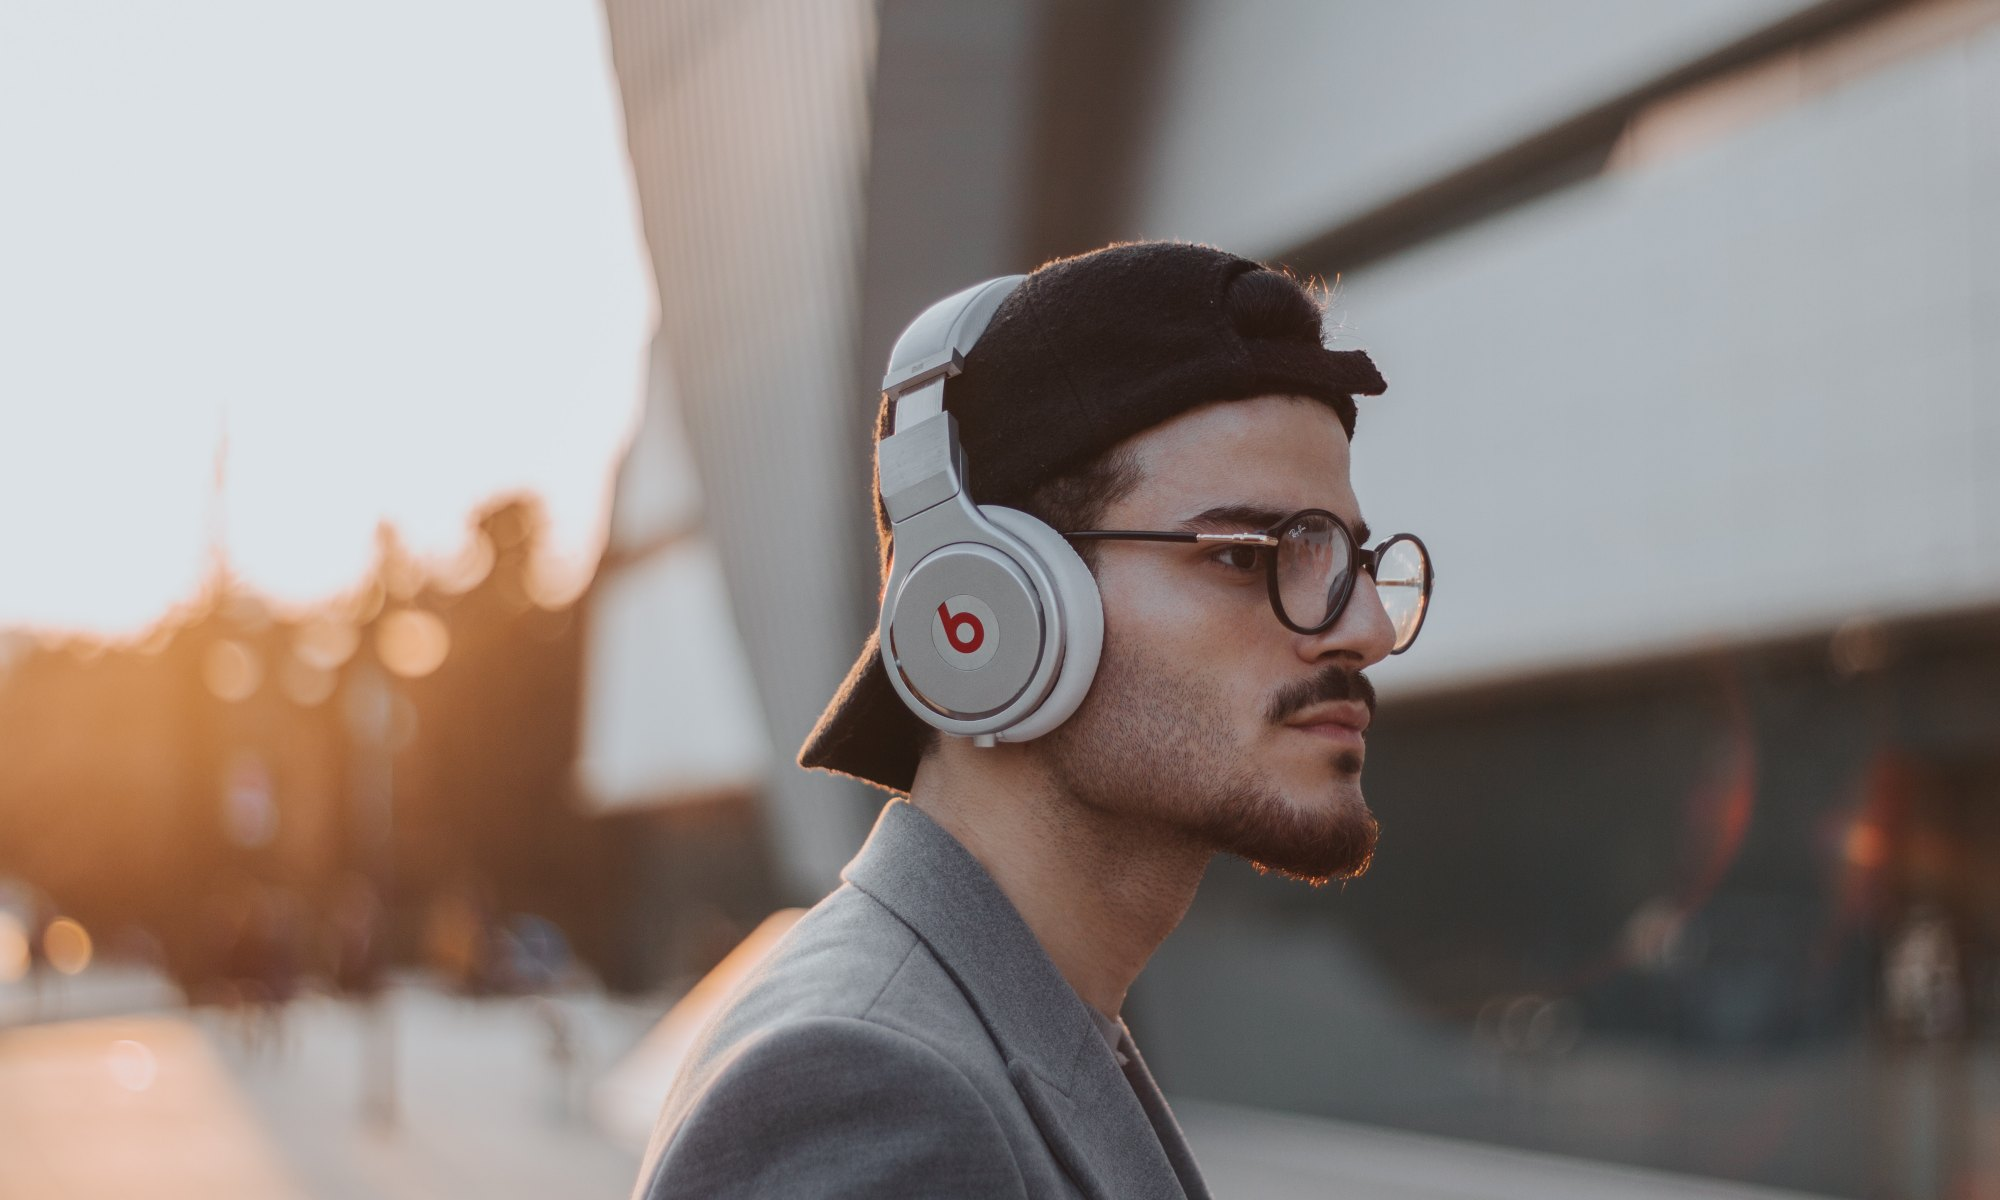 Man listening to relaxing music through headphones